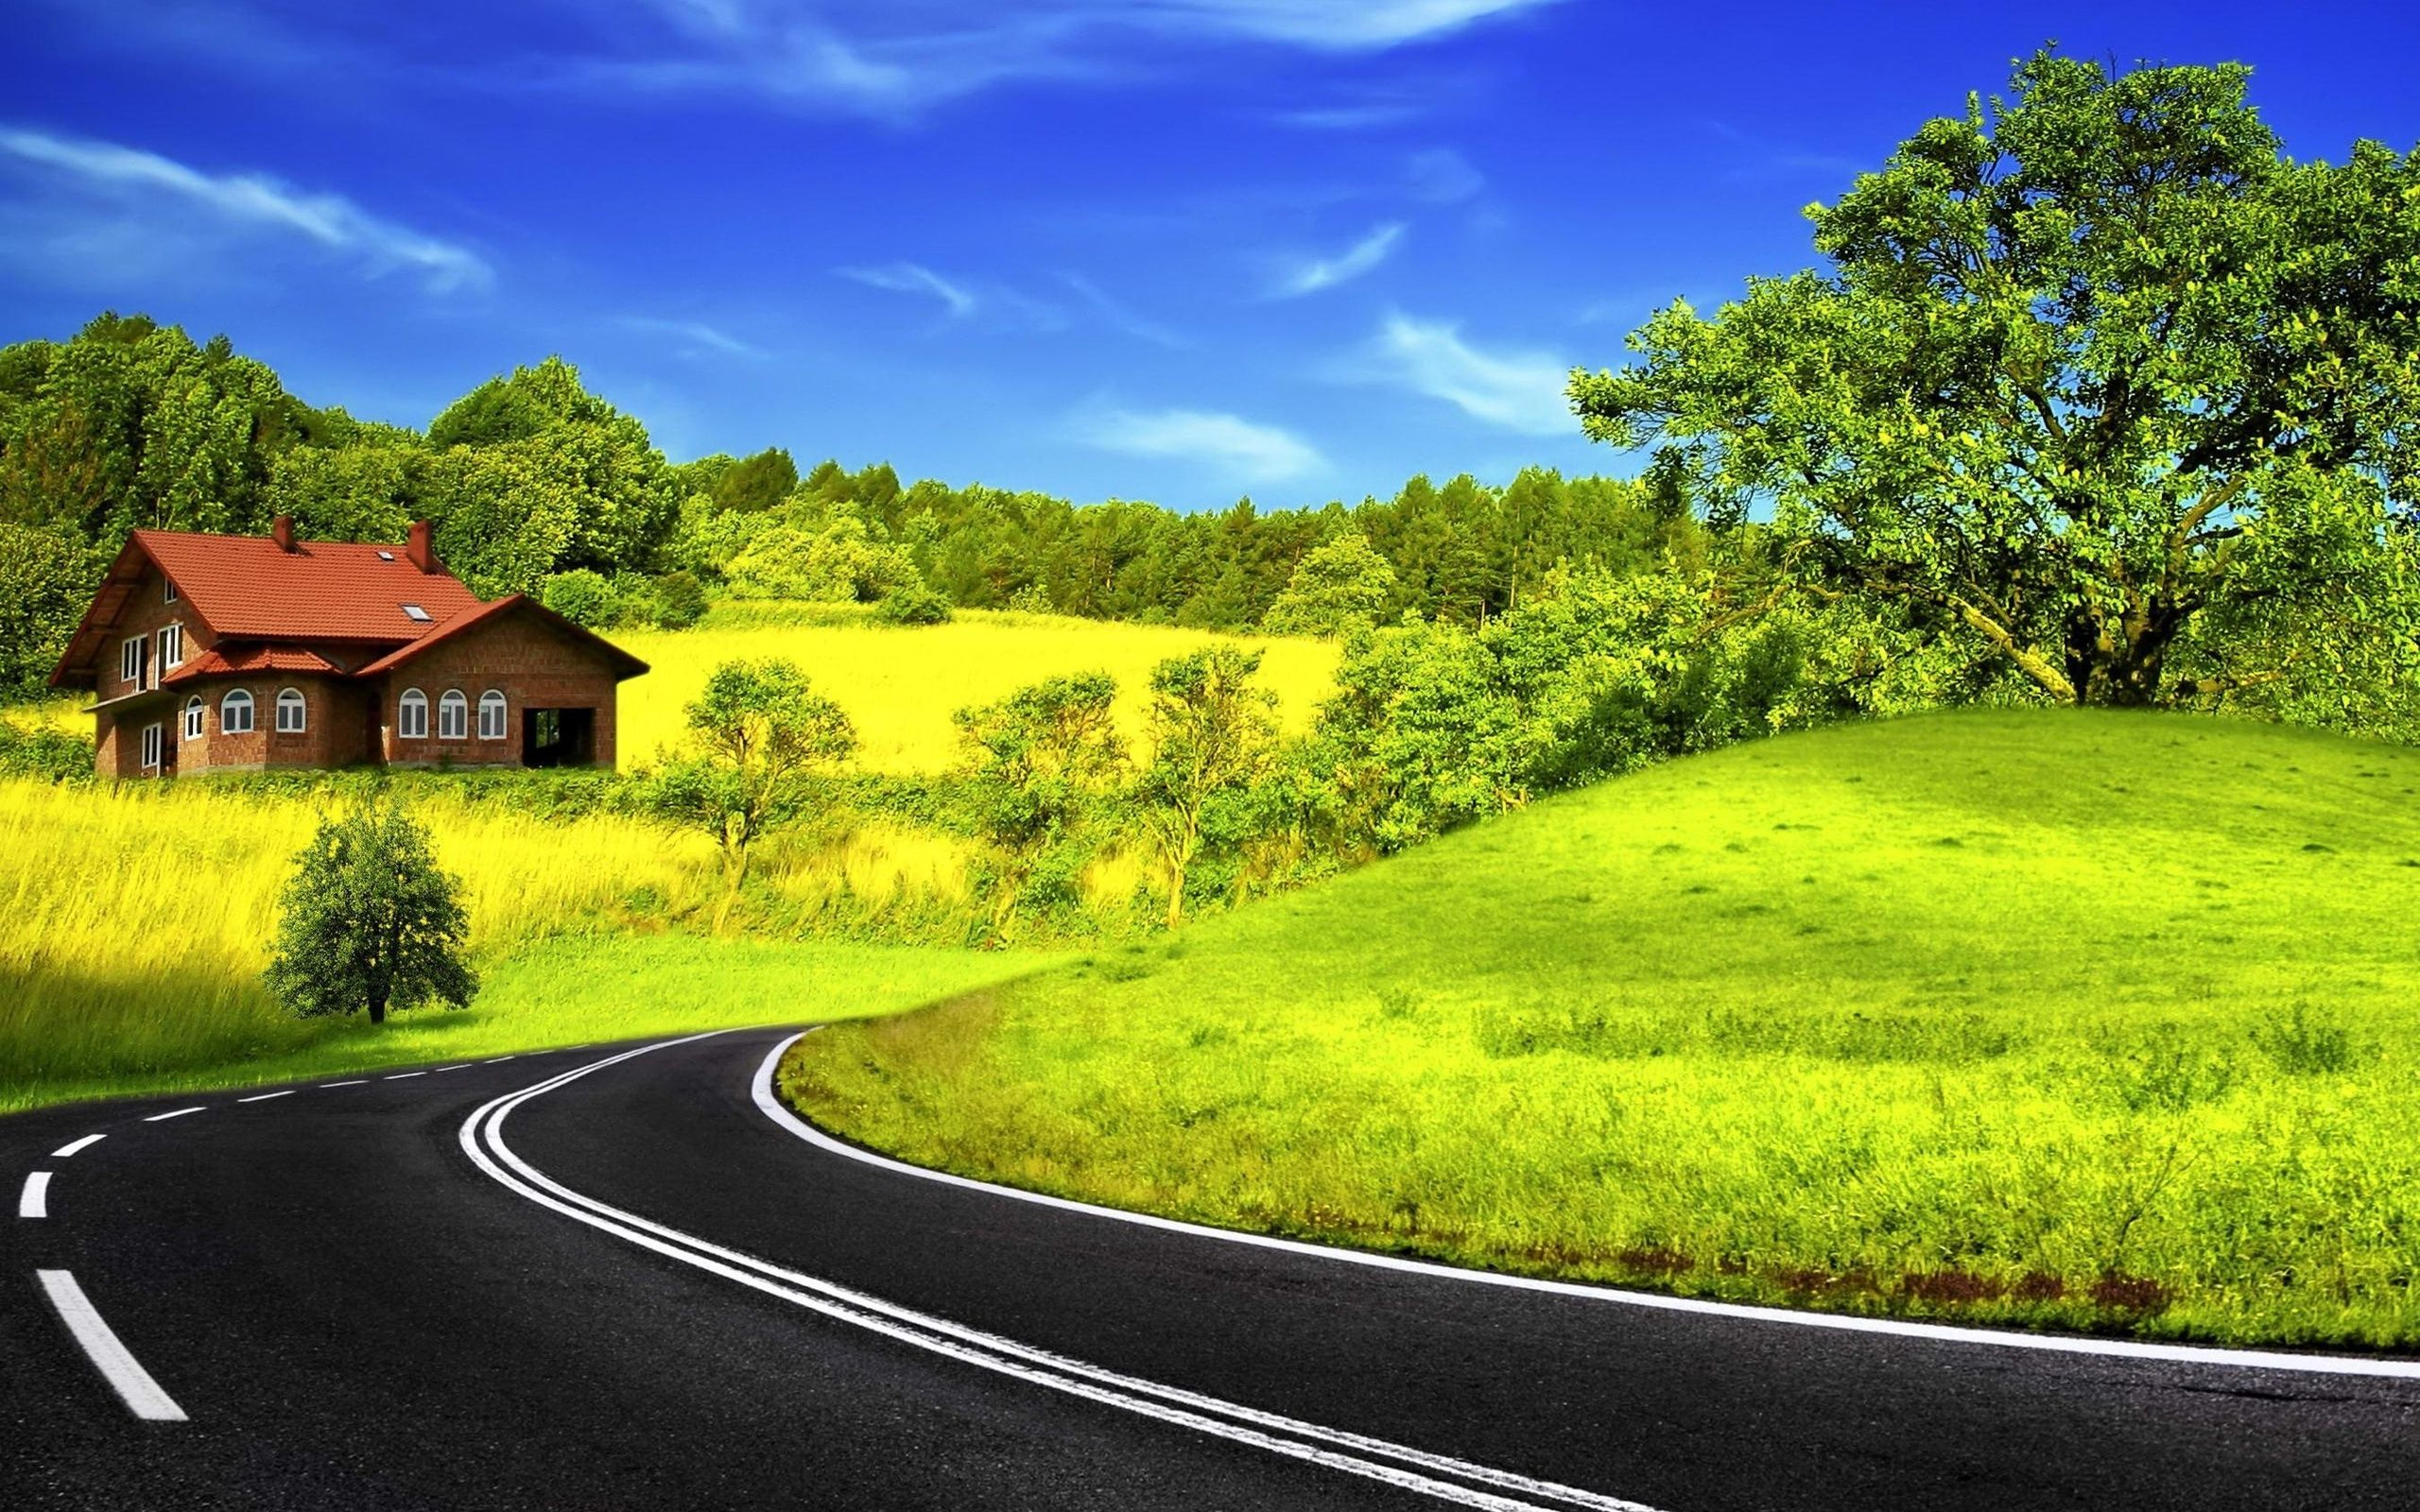 Hd Road Wallpaper Nature Wallpaper Forest Cottage Amazing Nature